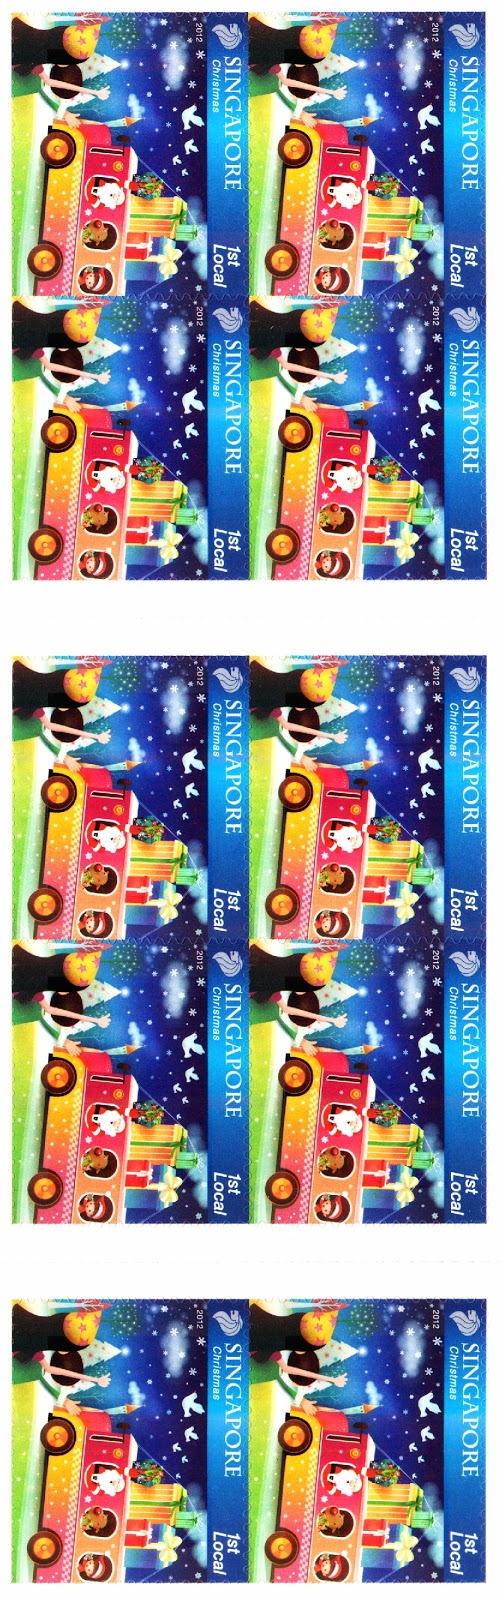 Self-adhesive Stamp Booklet S$2.55 - Christmas